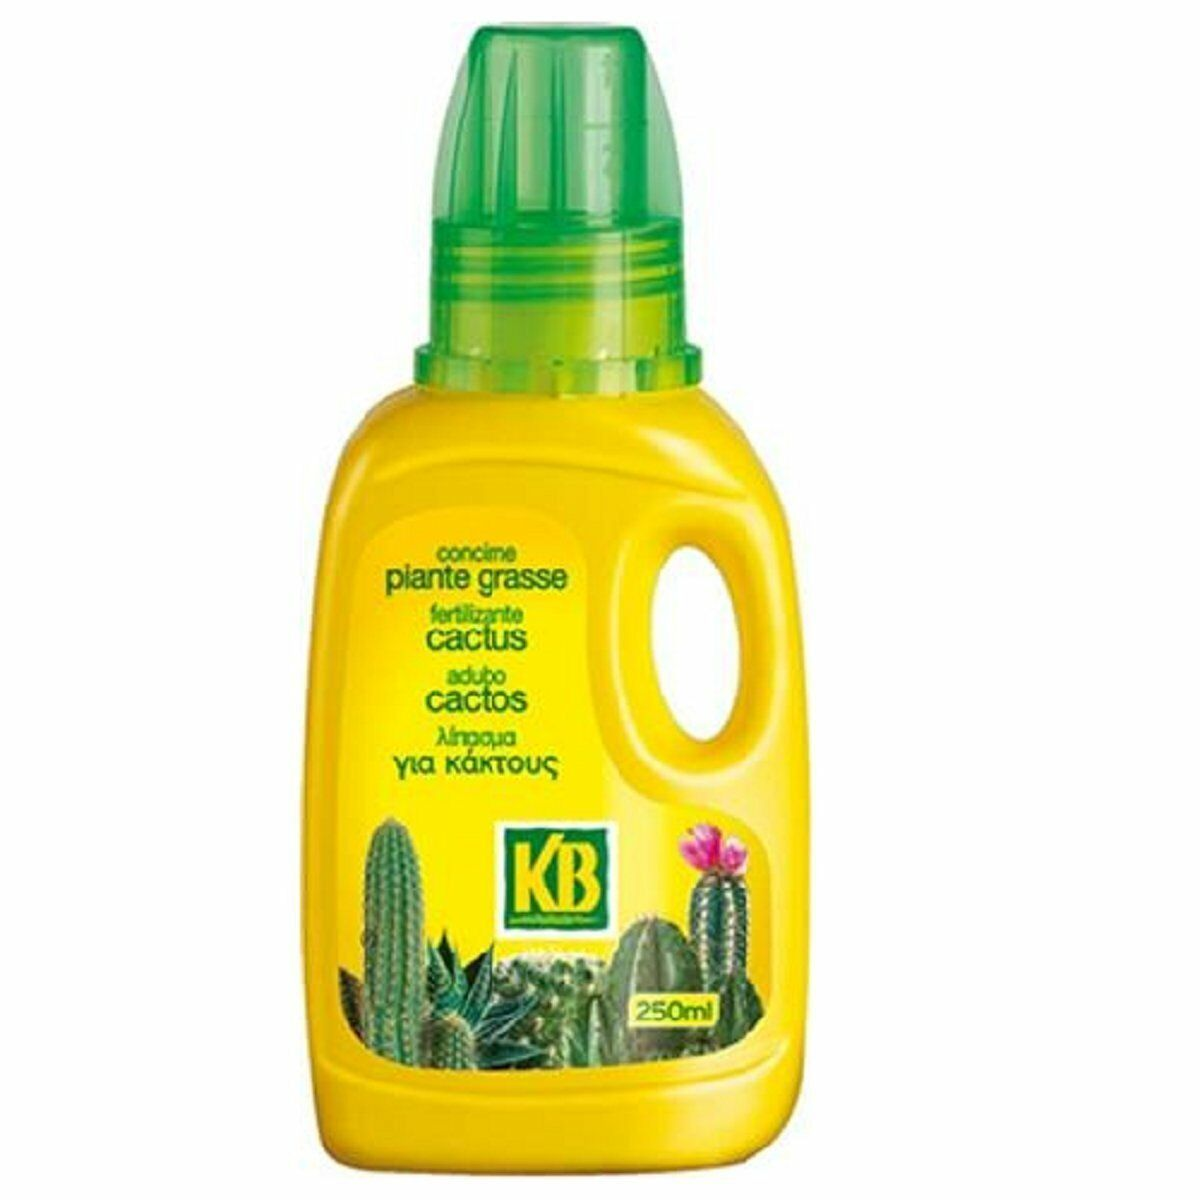 Concime liquido per piante grasse 250 ml. By KB